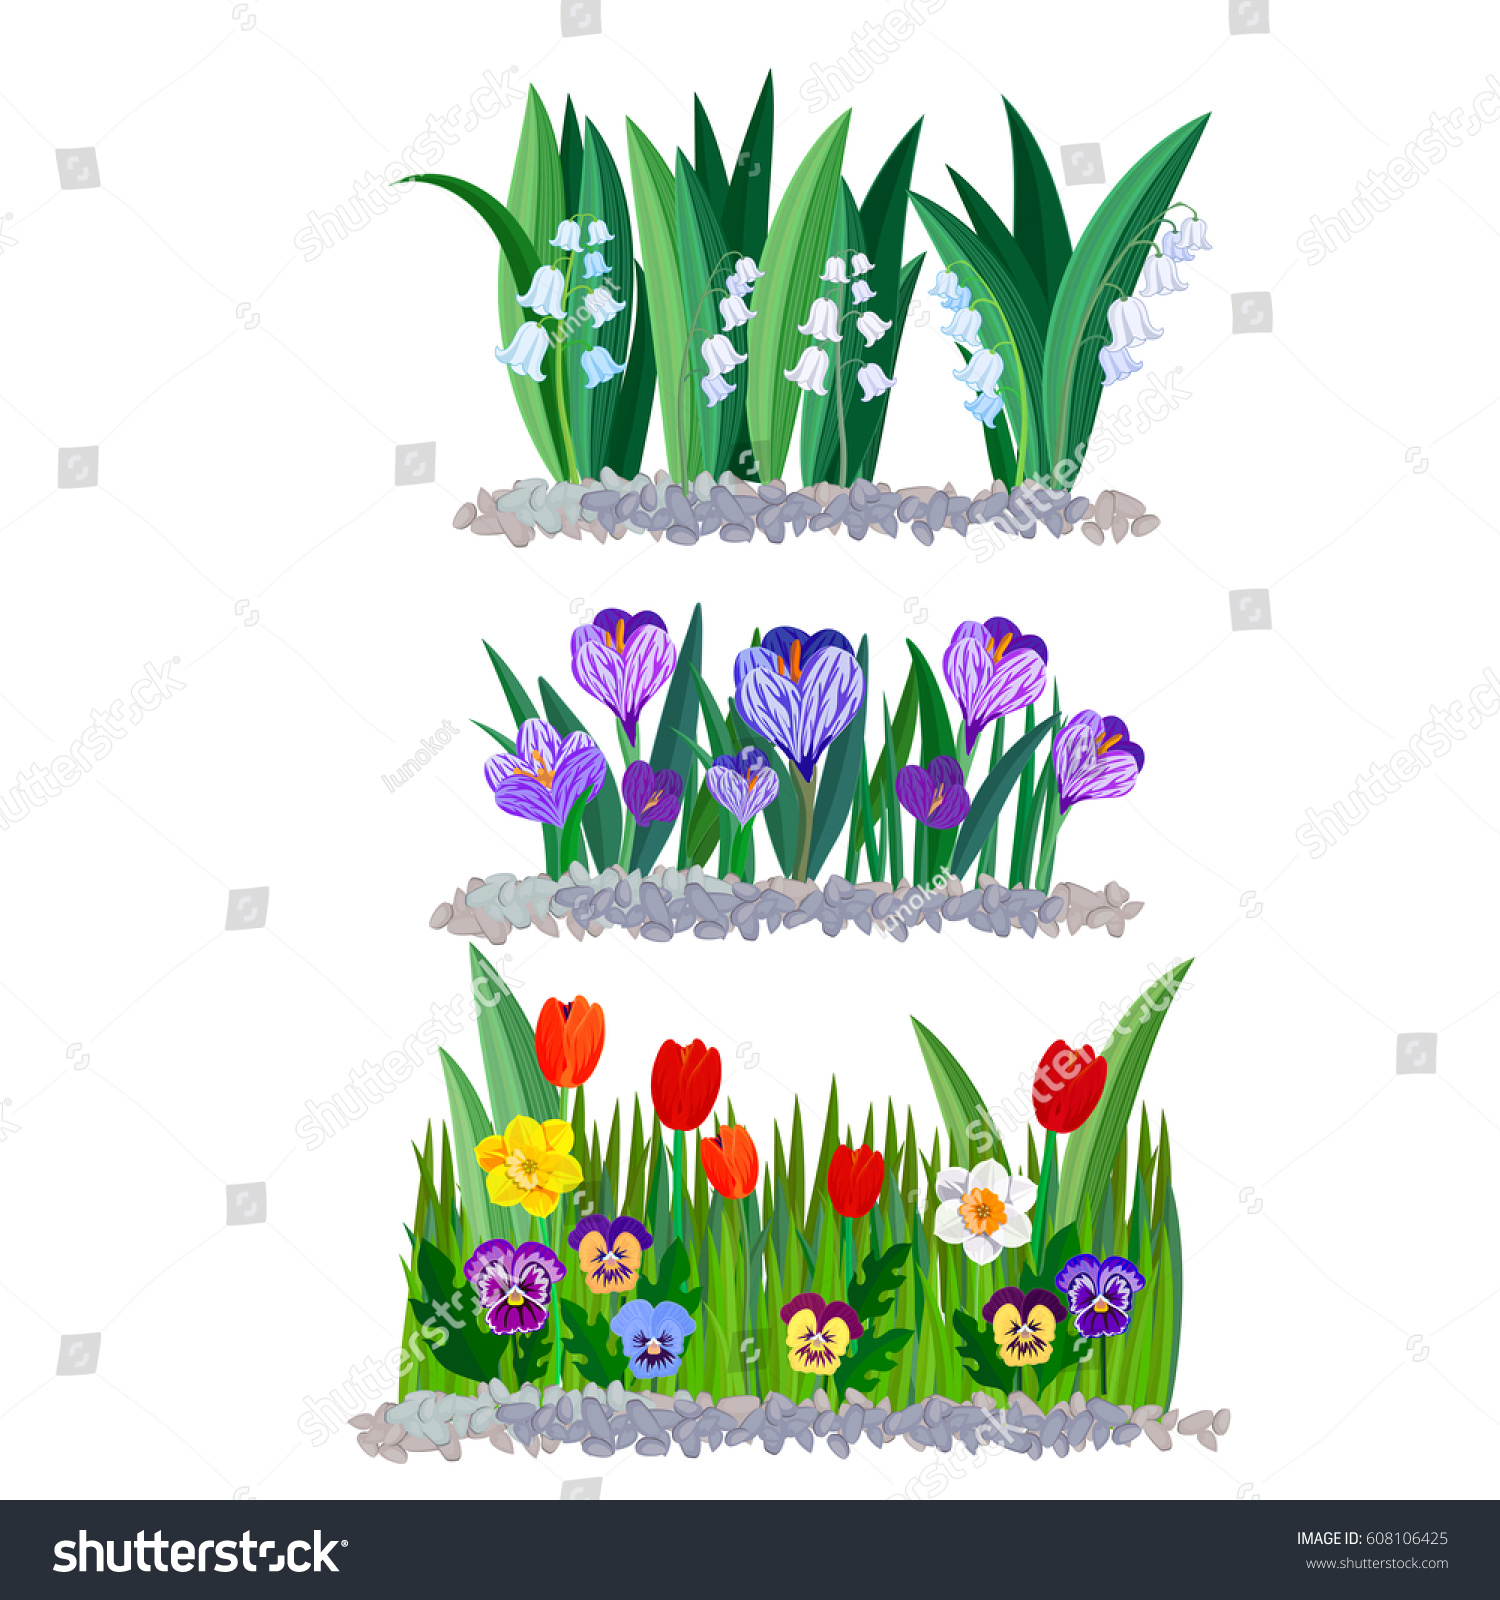 Spring Flowers Lily Valley Crocus Tulips Stock Vector 608106425